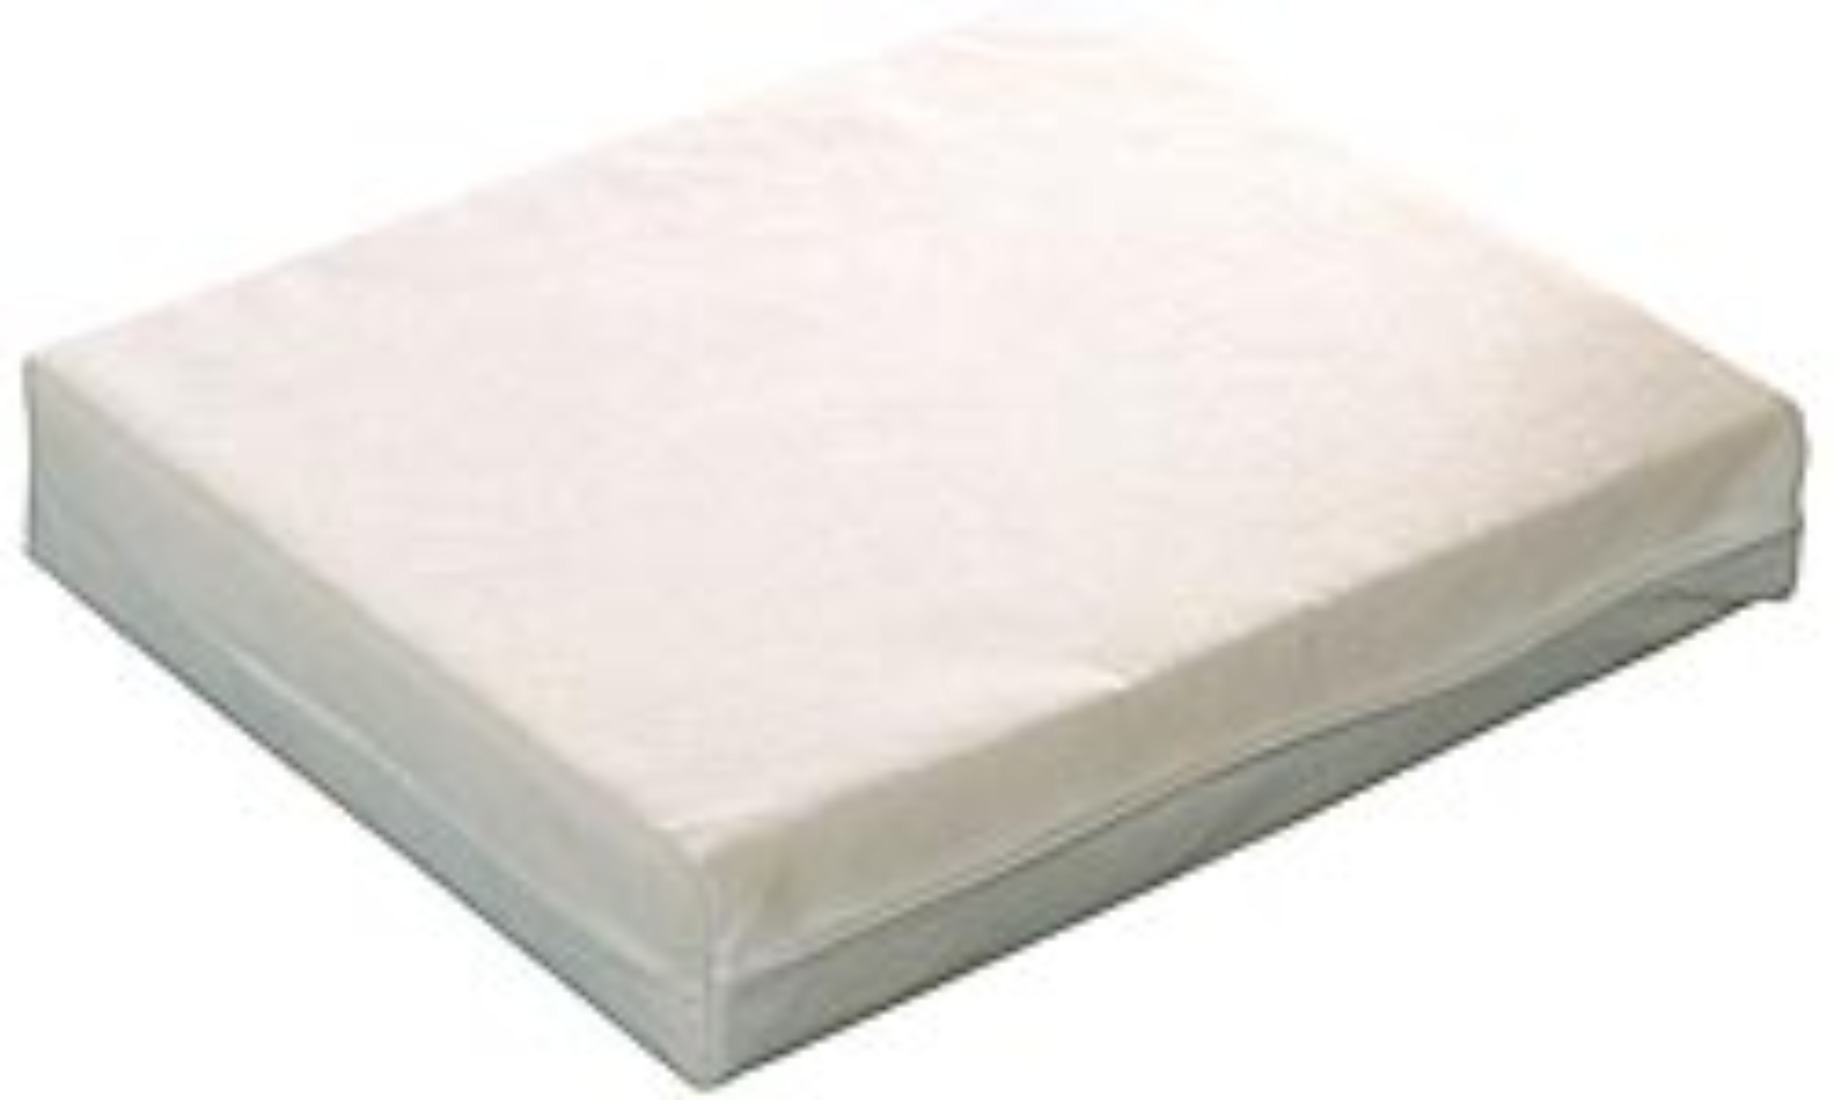 Travel cot mattress 7 cm depth made to measure